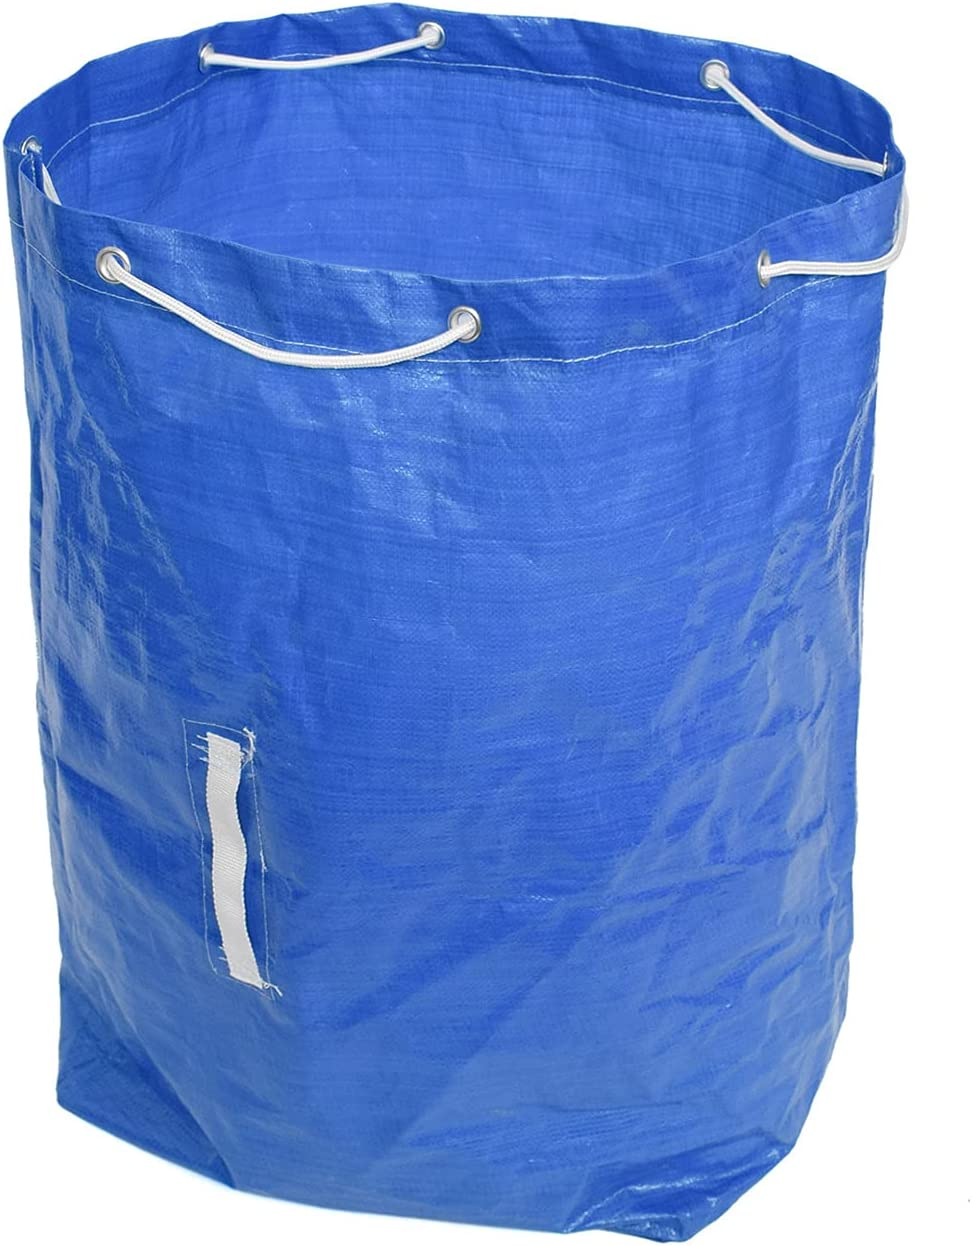 Alapaste 26.4 Gallons Reusable online shopping Lawn Bags Yard OFFicial store Waterproof Garden